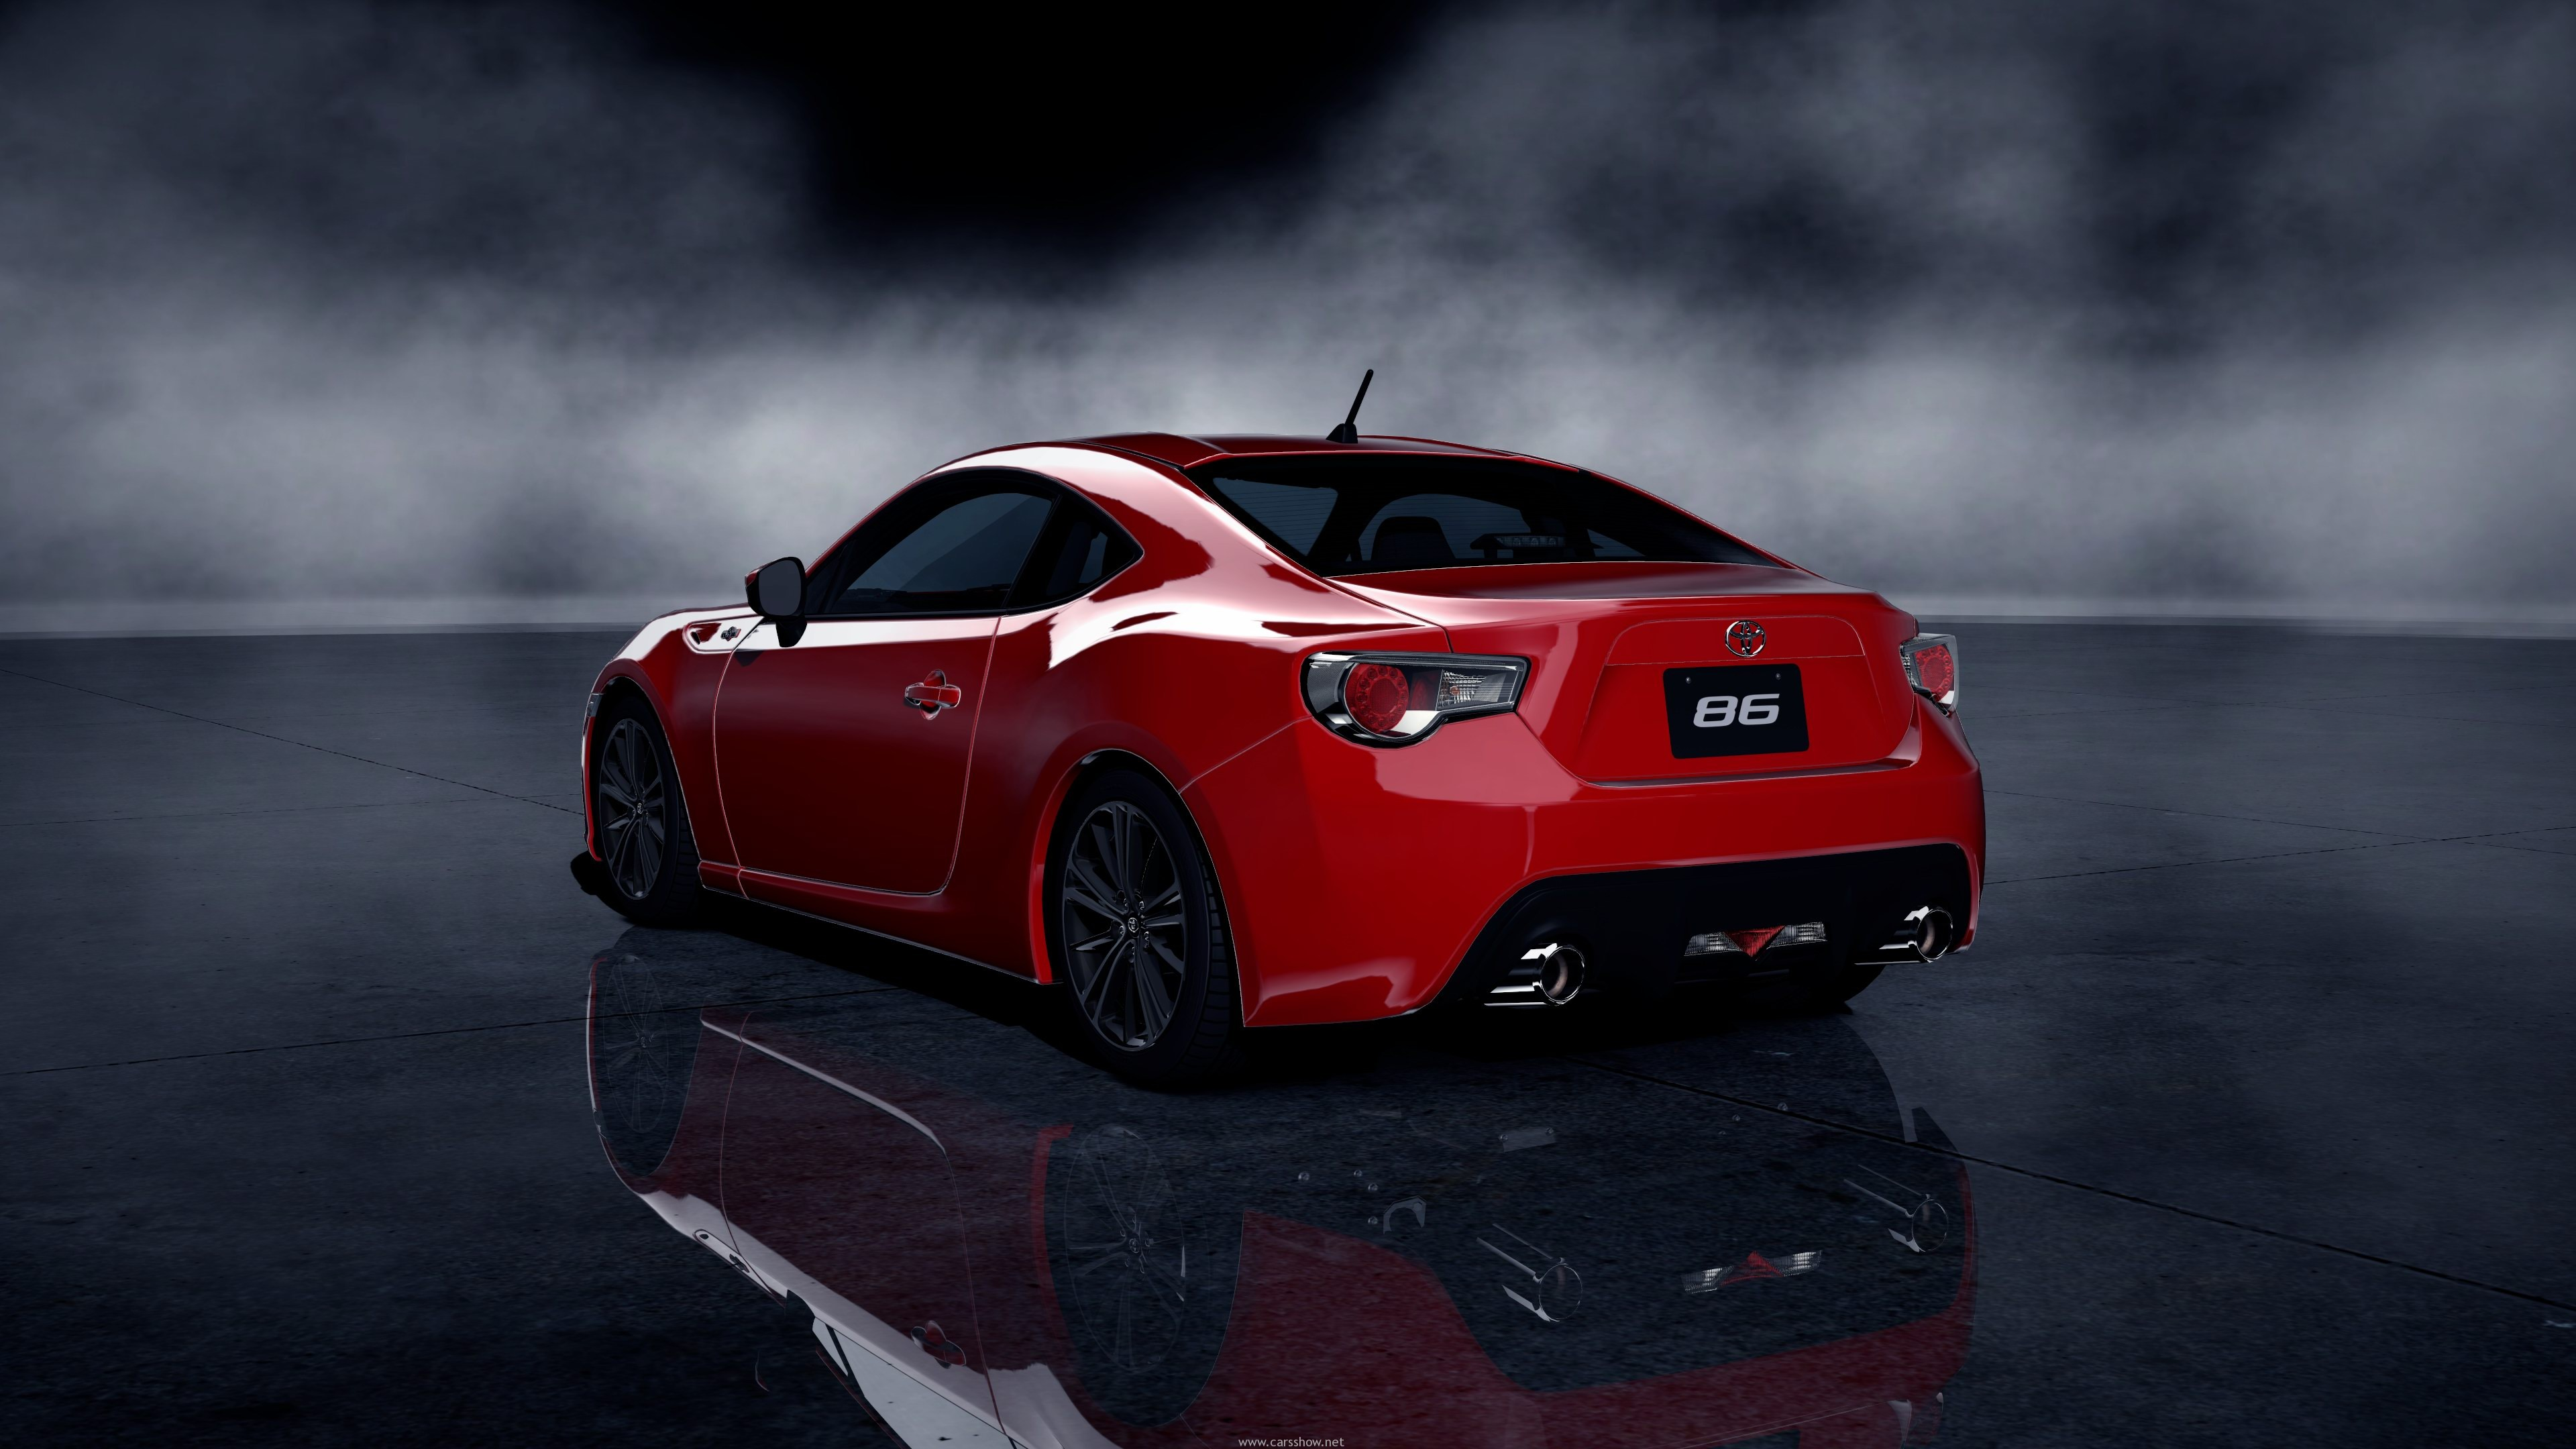 2012 Toyota GT 86 Red - Download Wallpaper